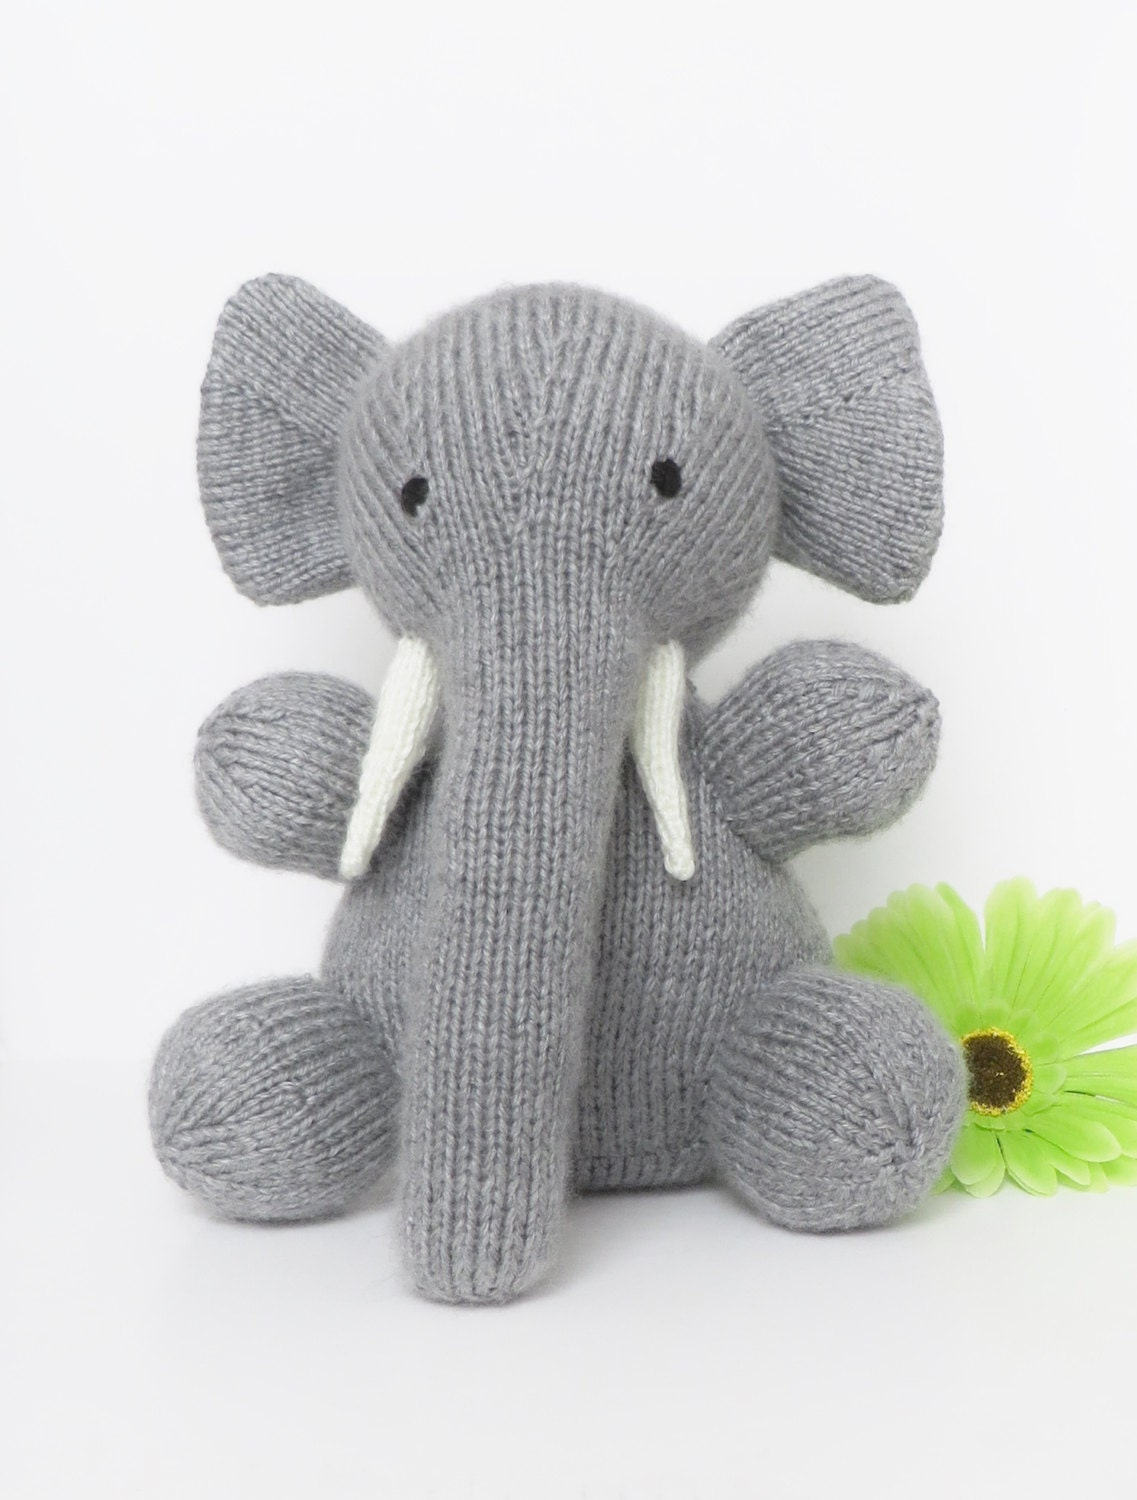 Knitting Pattern Toy Elephant : 301 Moved Permanently